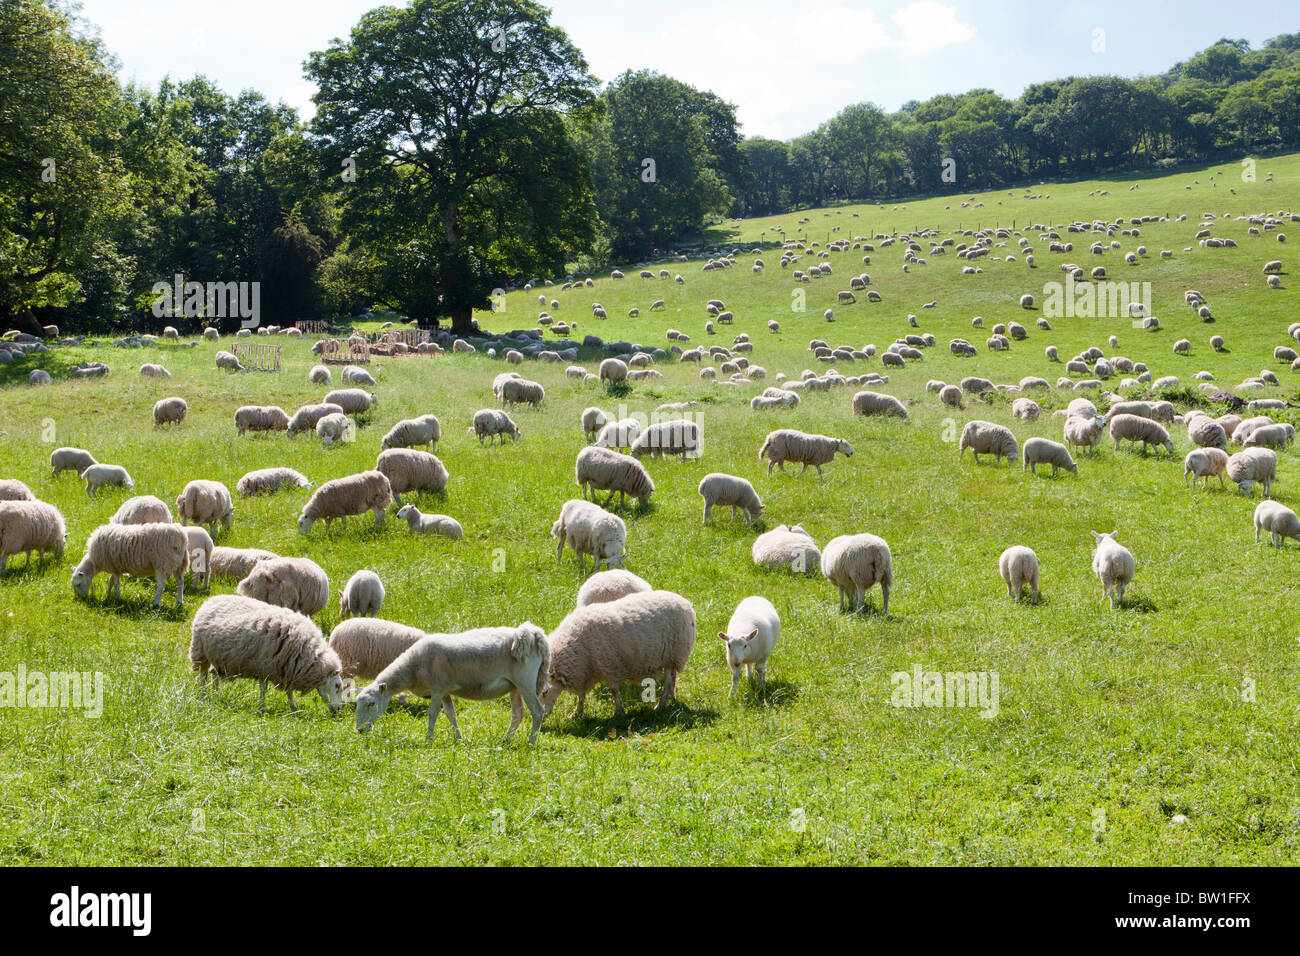 A field of grazing sheep at Aber Village, south of Talybont-on-Usk, Powys, Wales - Stock Image